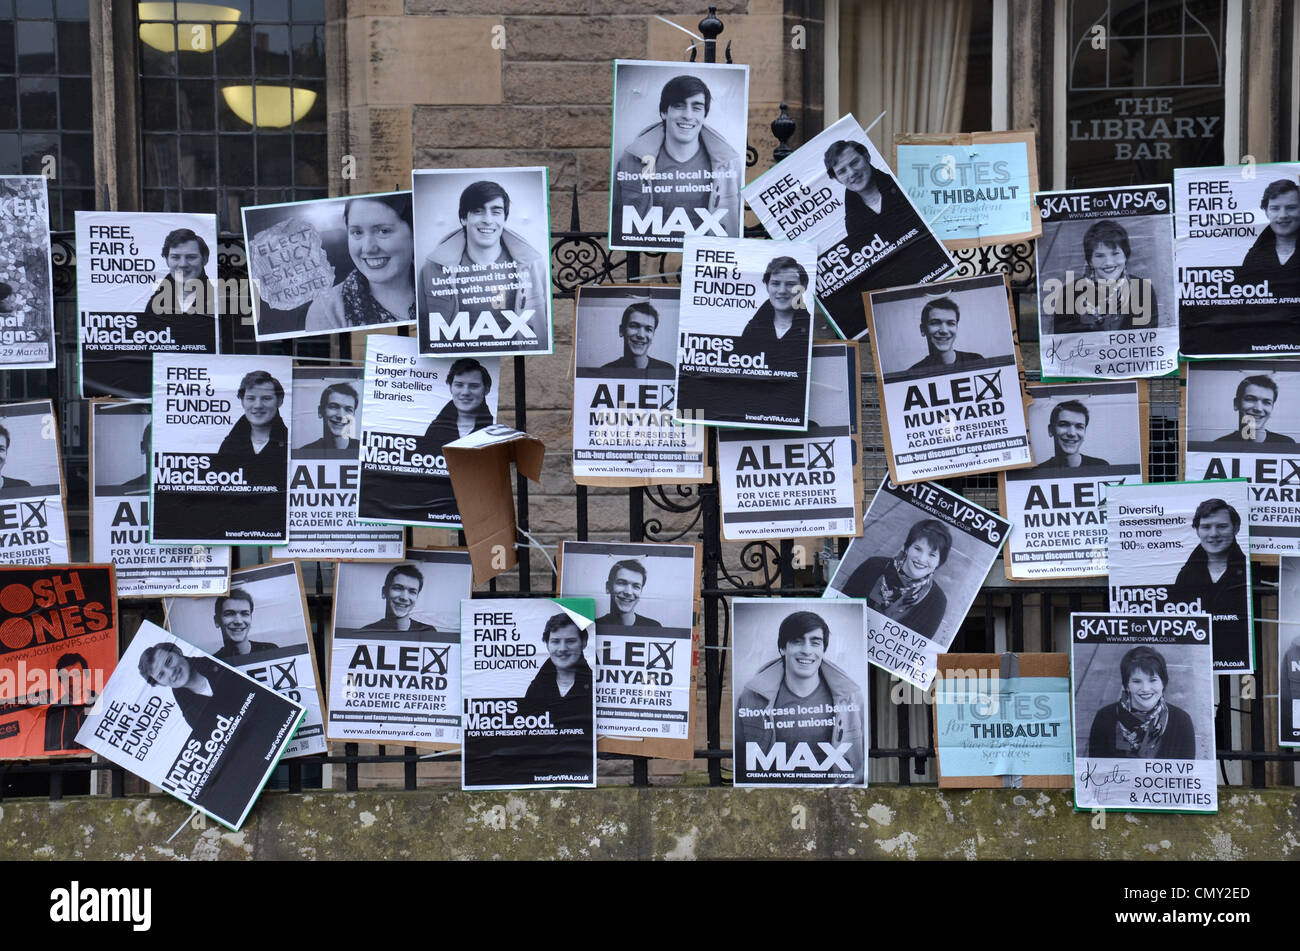 Posters for Edinburgh University Student Association (EUSA) elections on railings at the students union building - Stock Image